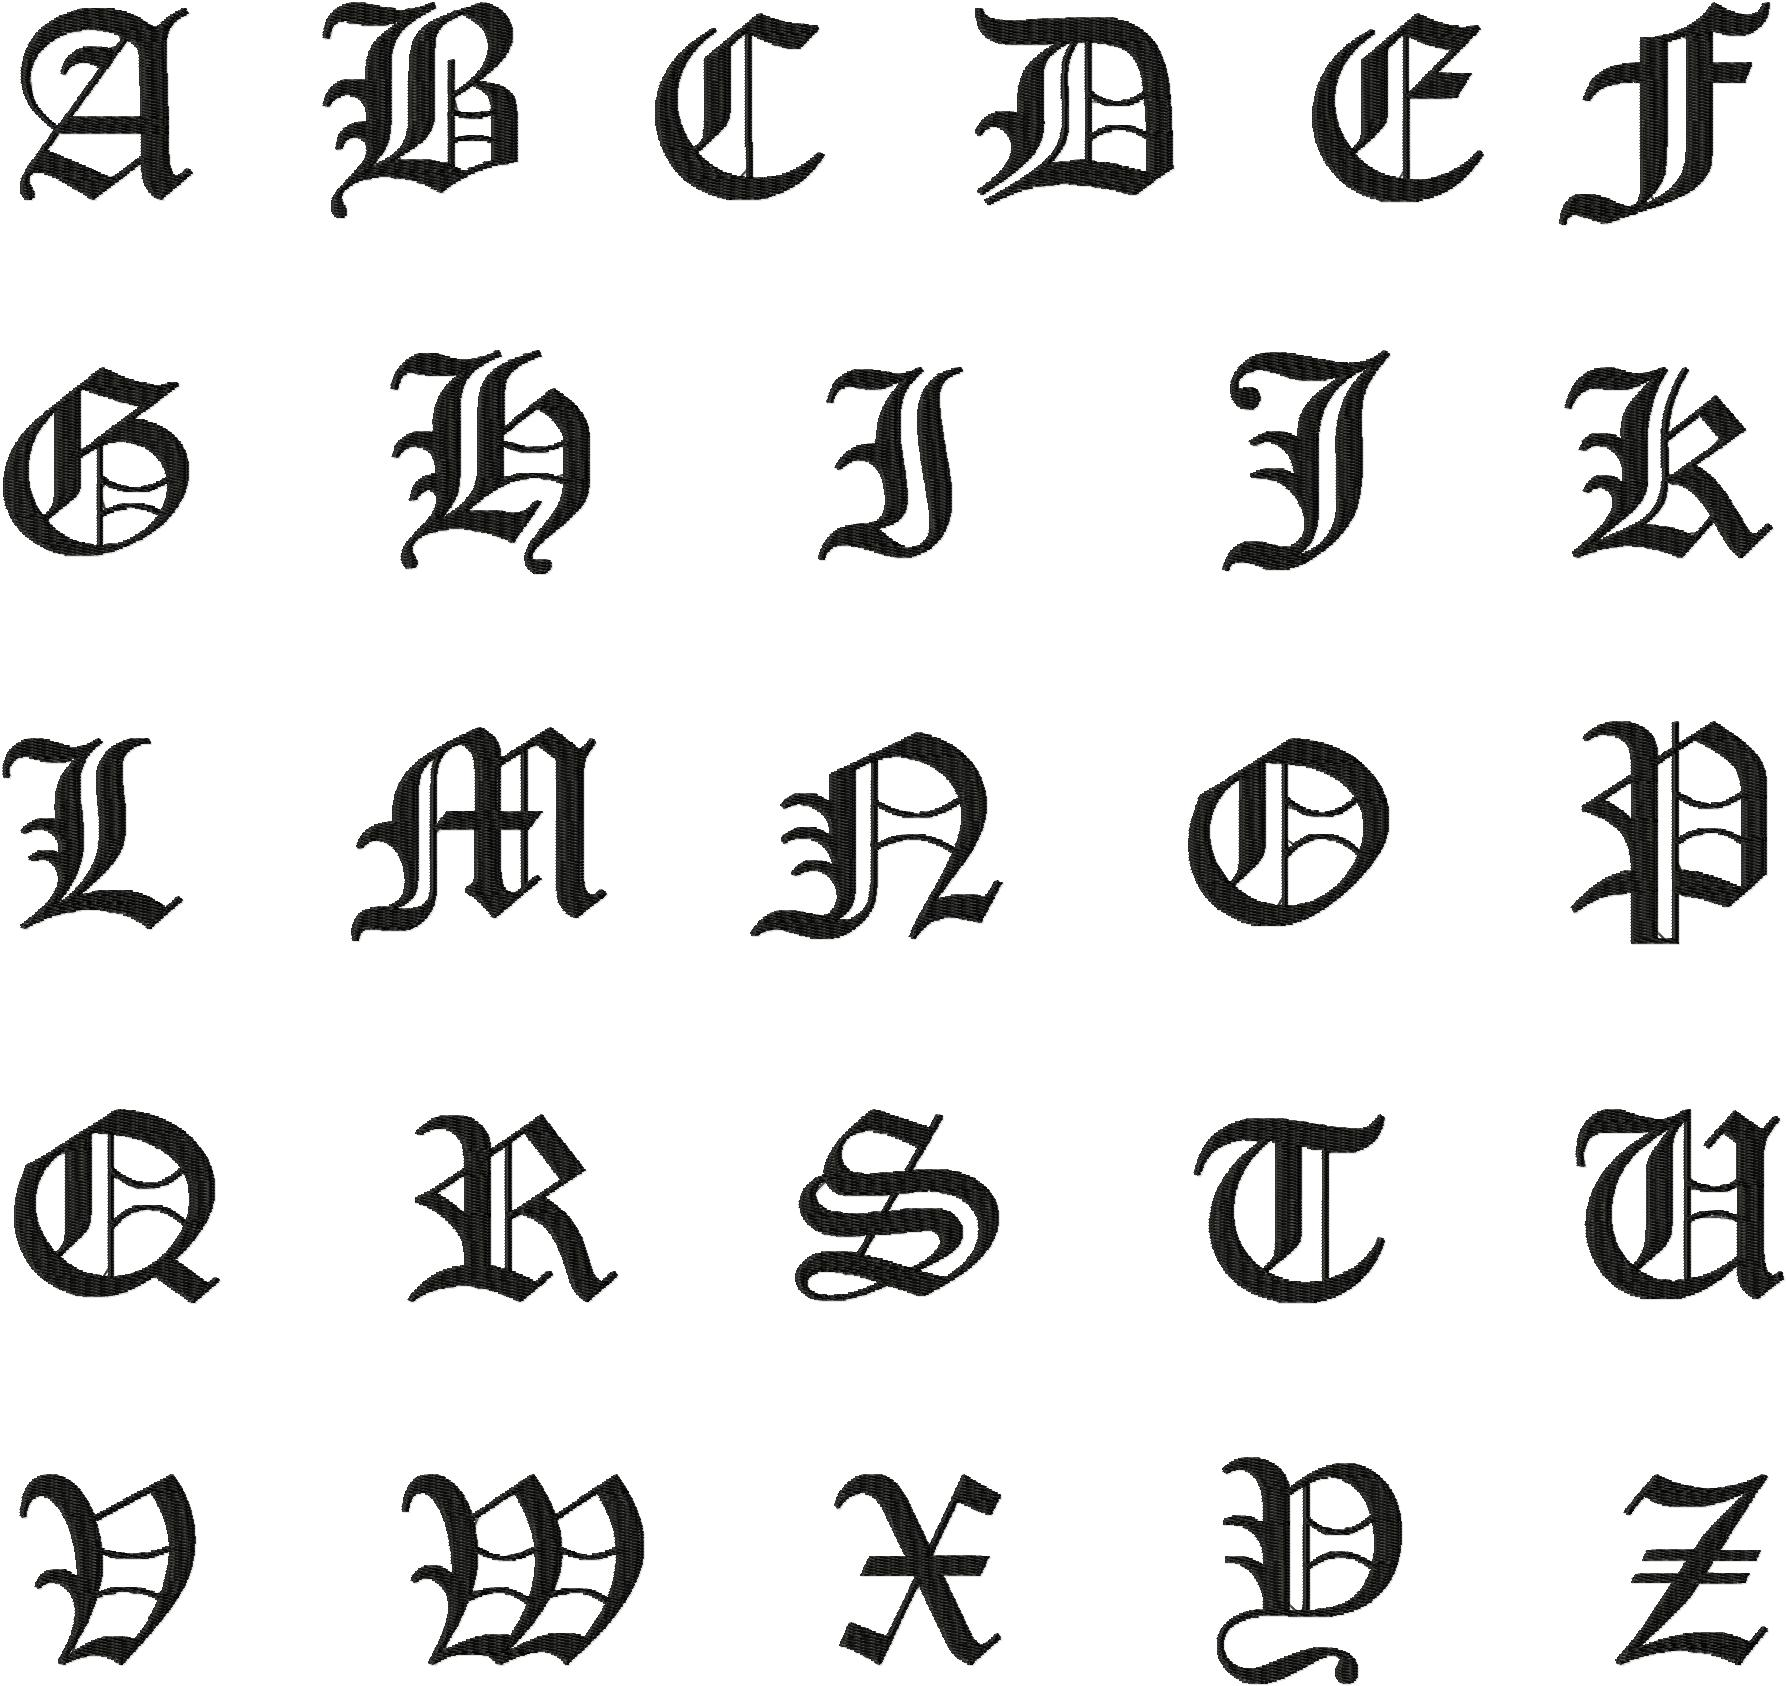 Old English Capital Letters